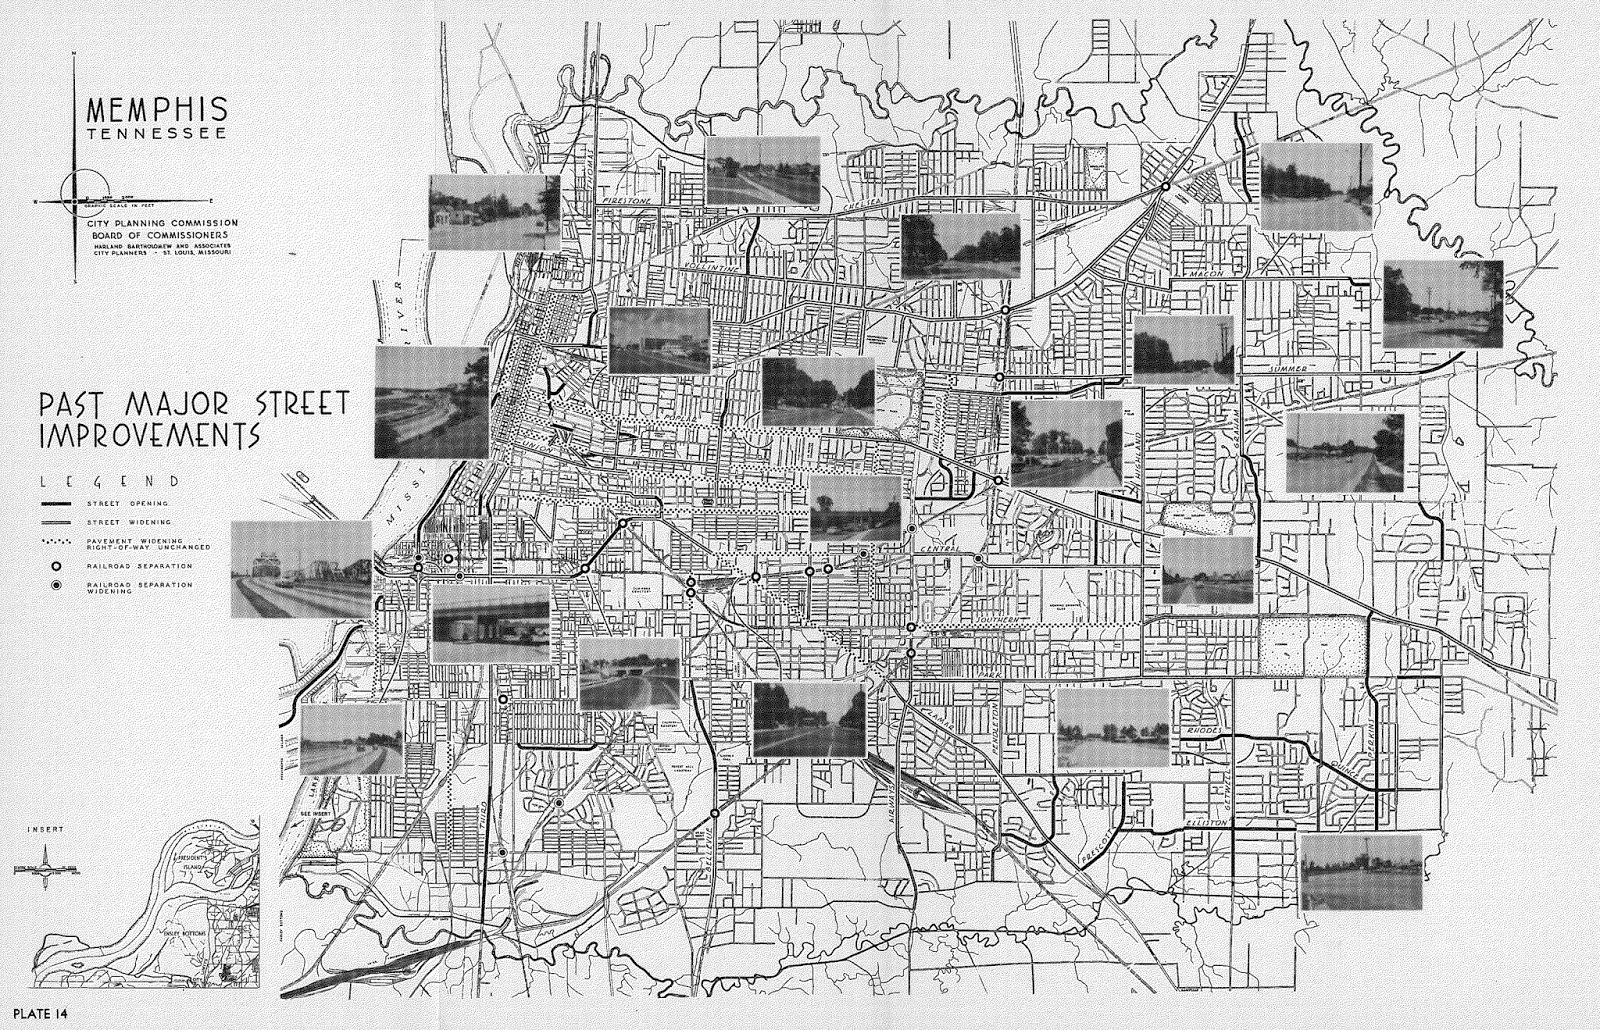 map no 8 this map was included in the 1955 plan created by harland bartholomew and associates for the memphis city planning commission